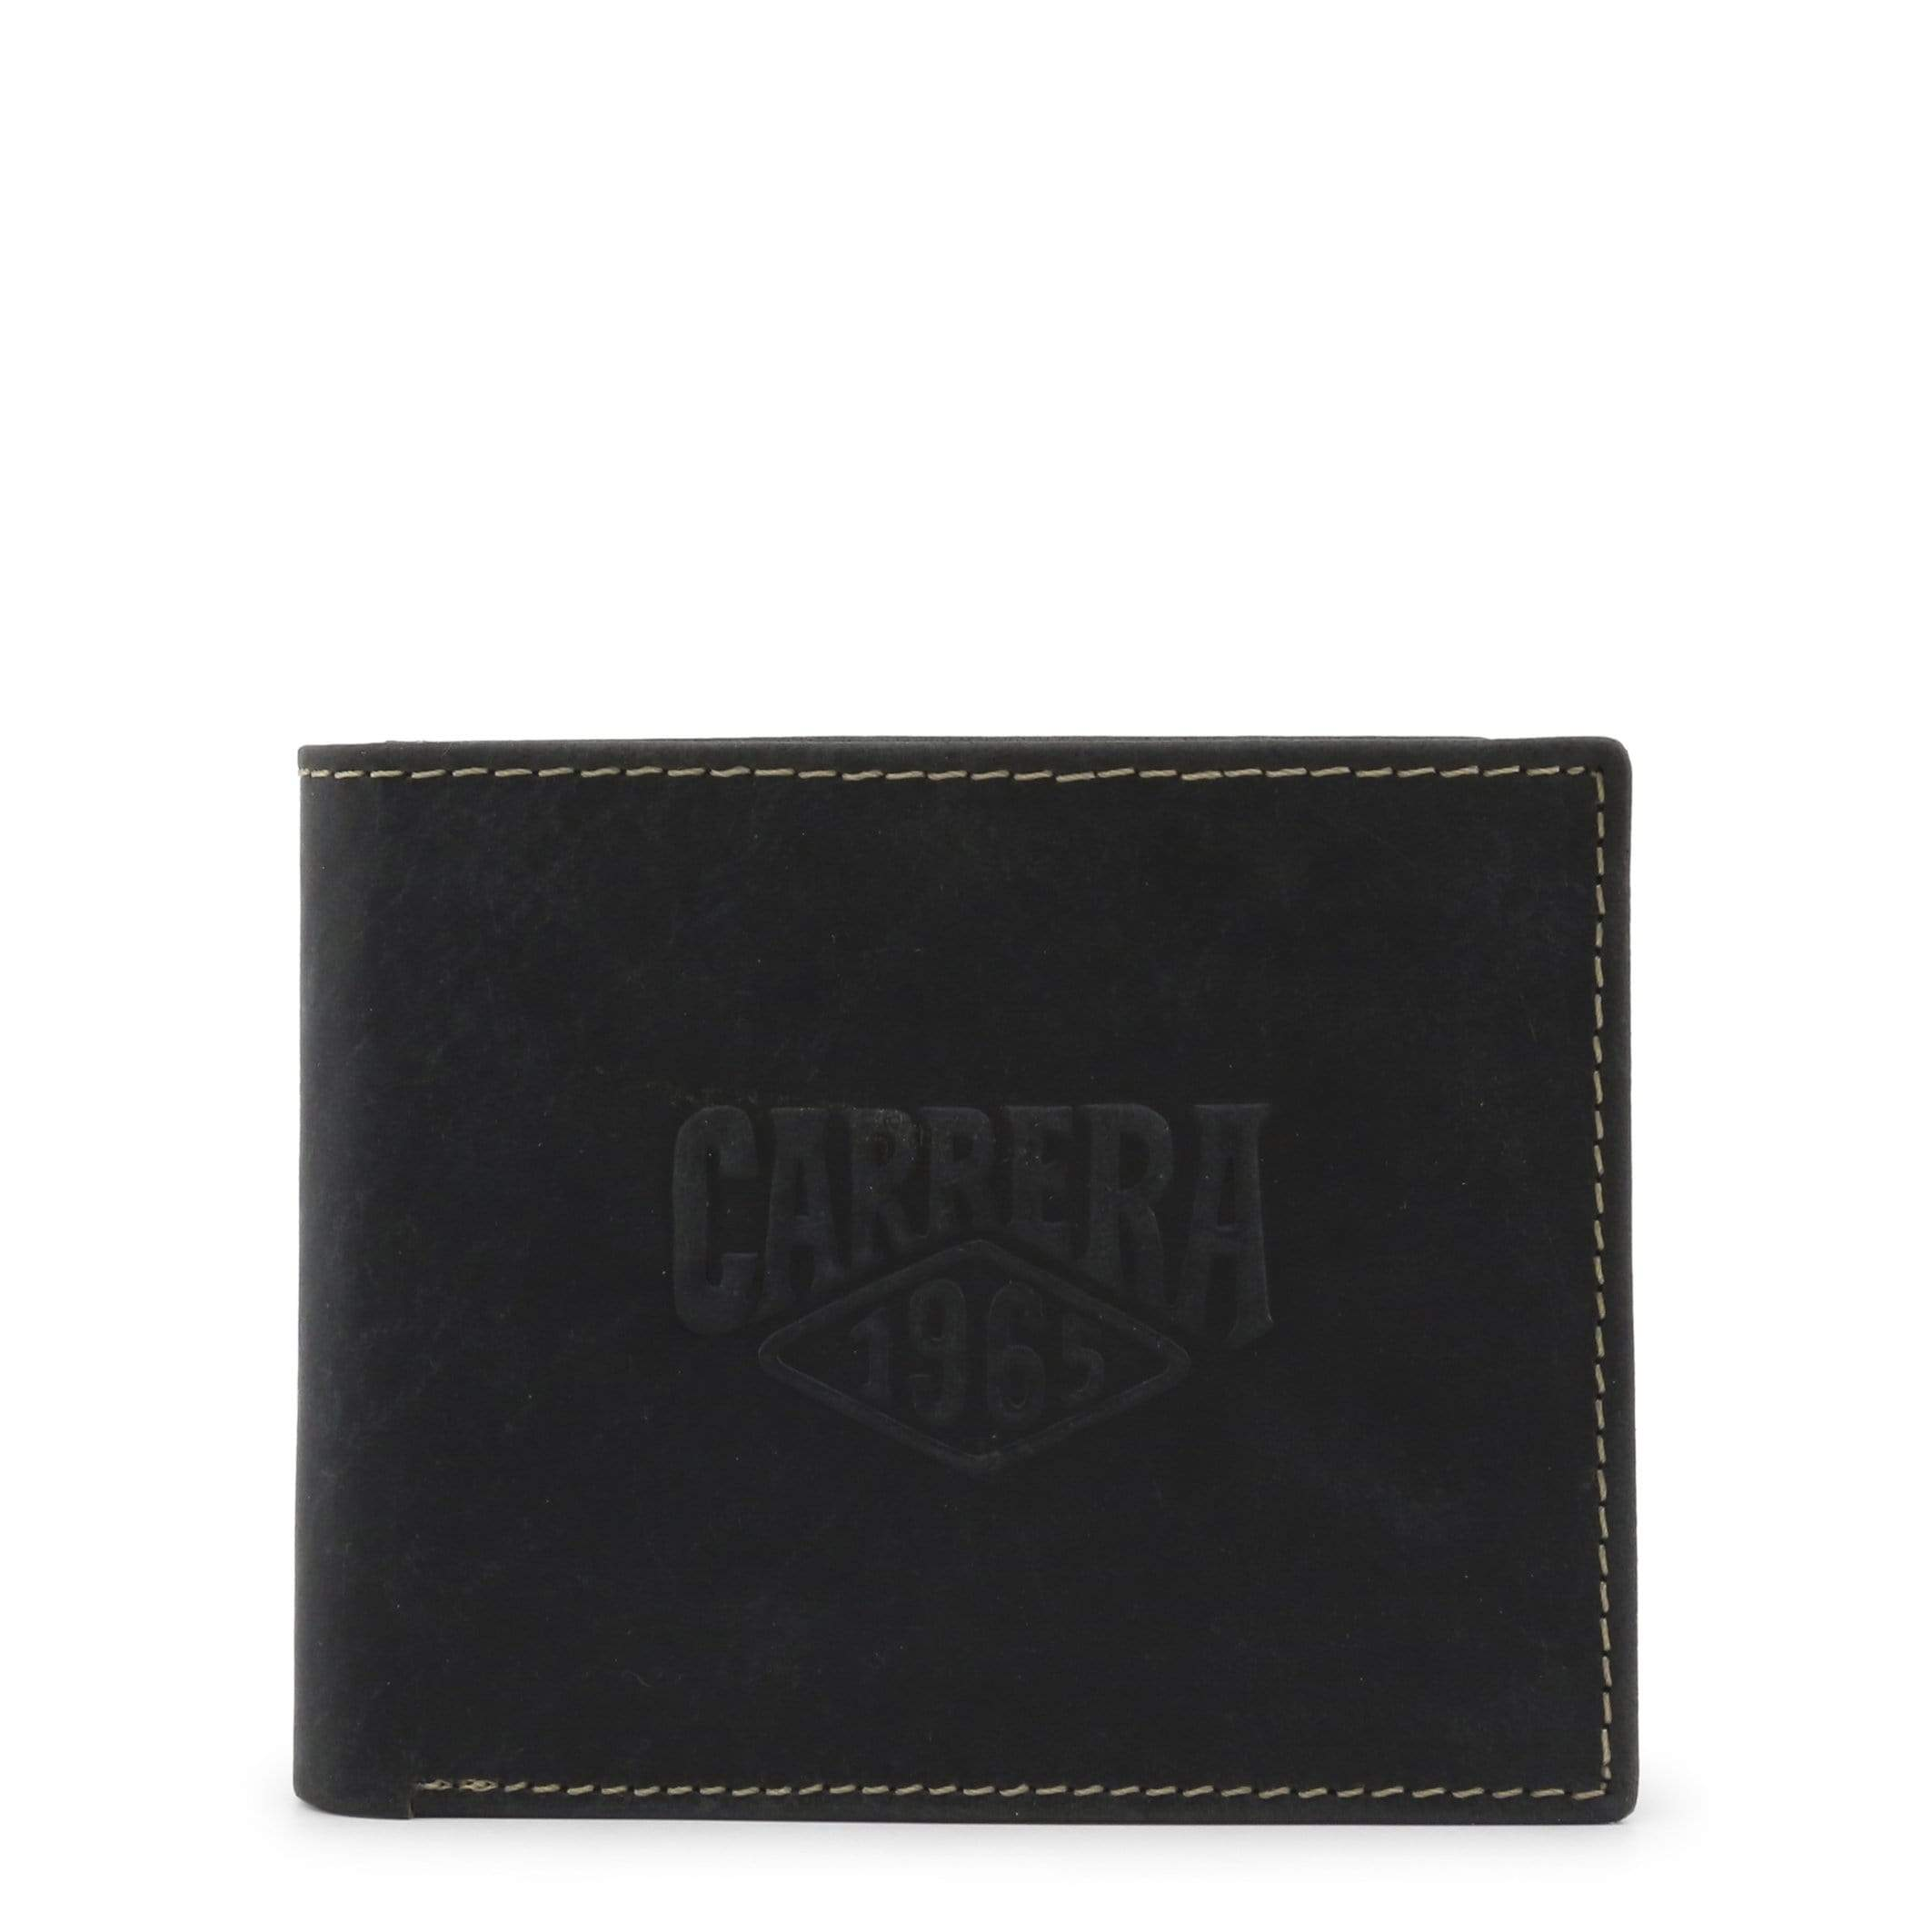 Carrera Jeans Accessories Wallets blue / NOSIZE Carrera Jeans - CB872B